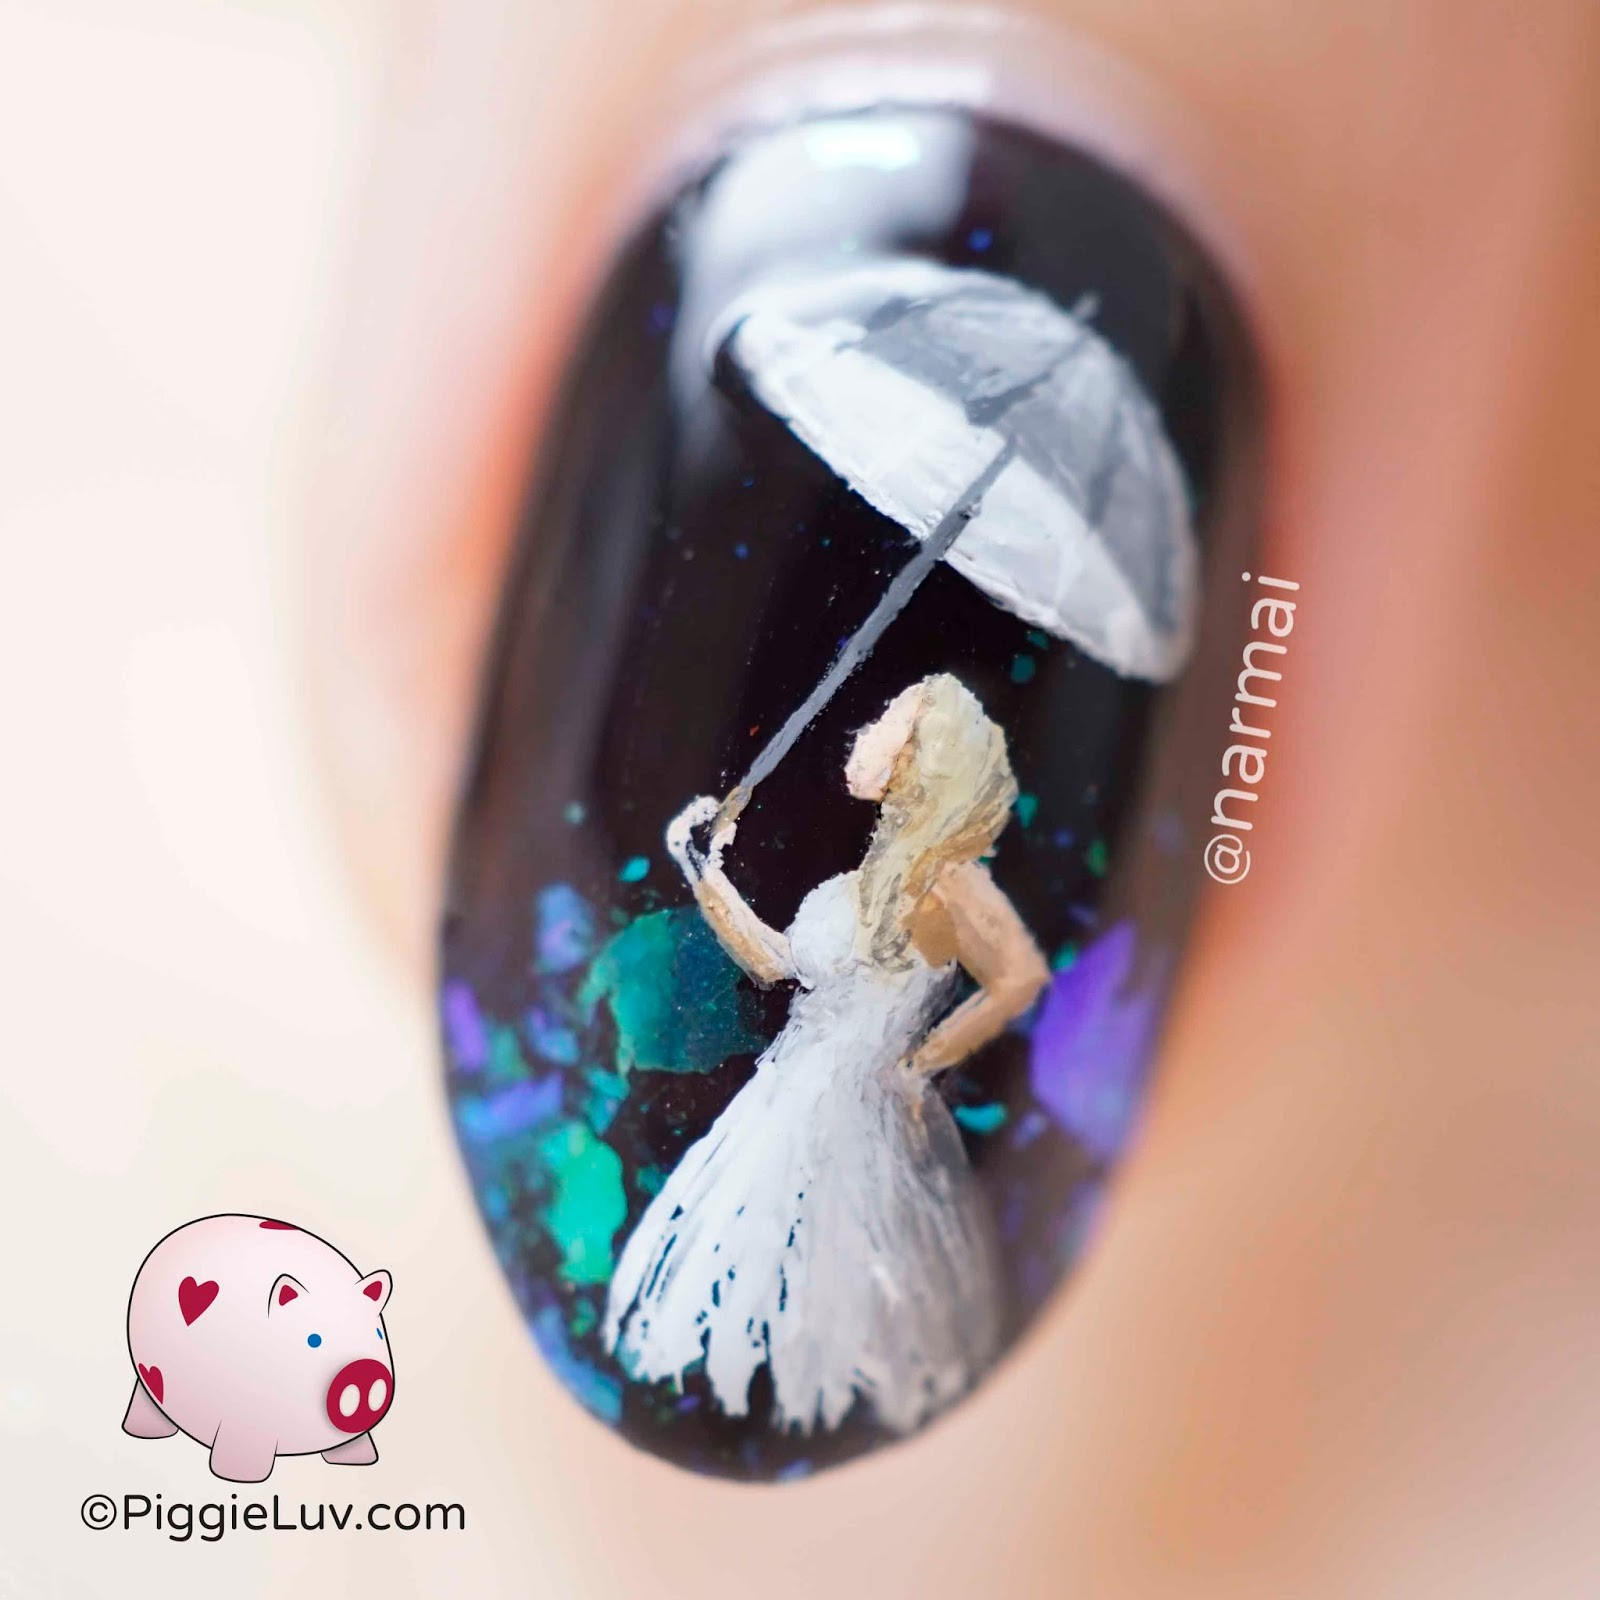 PiggieLuv: Umbrella girl nail art